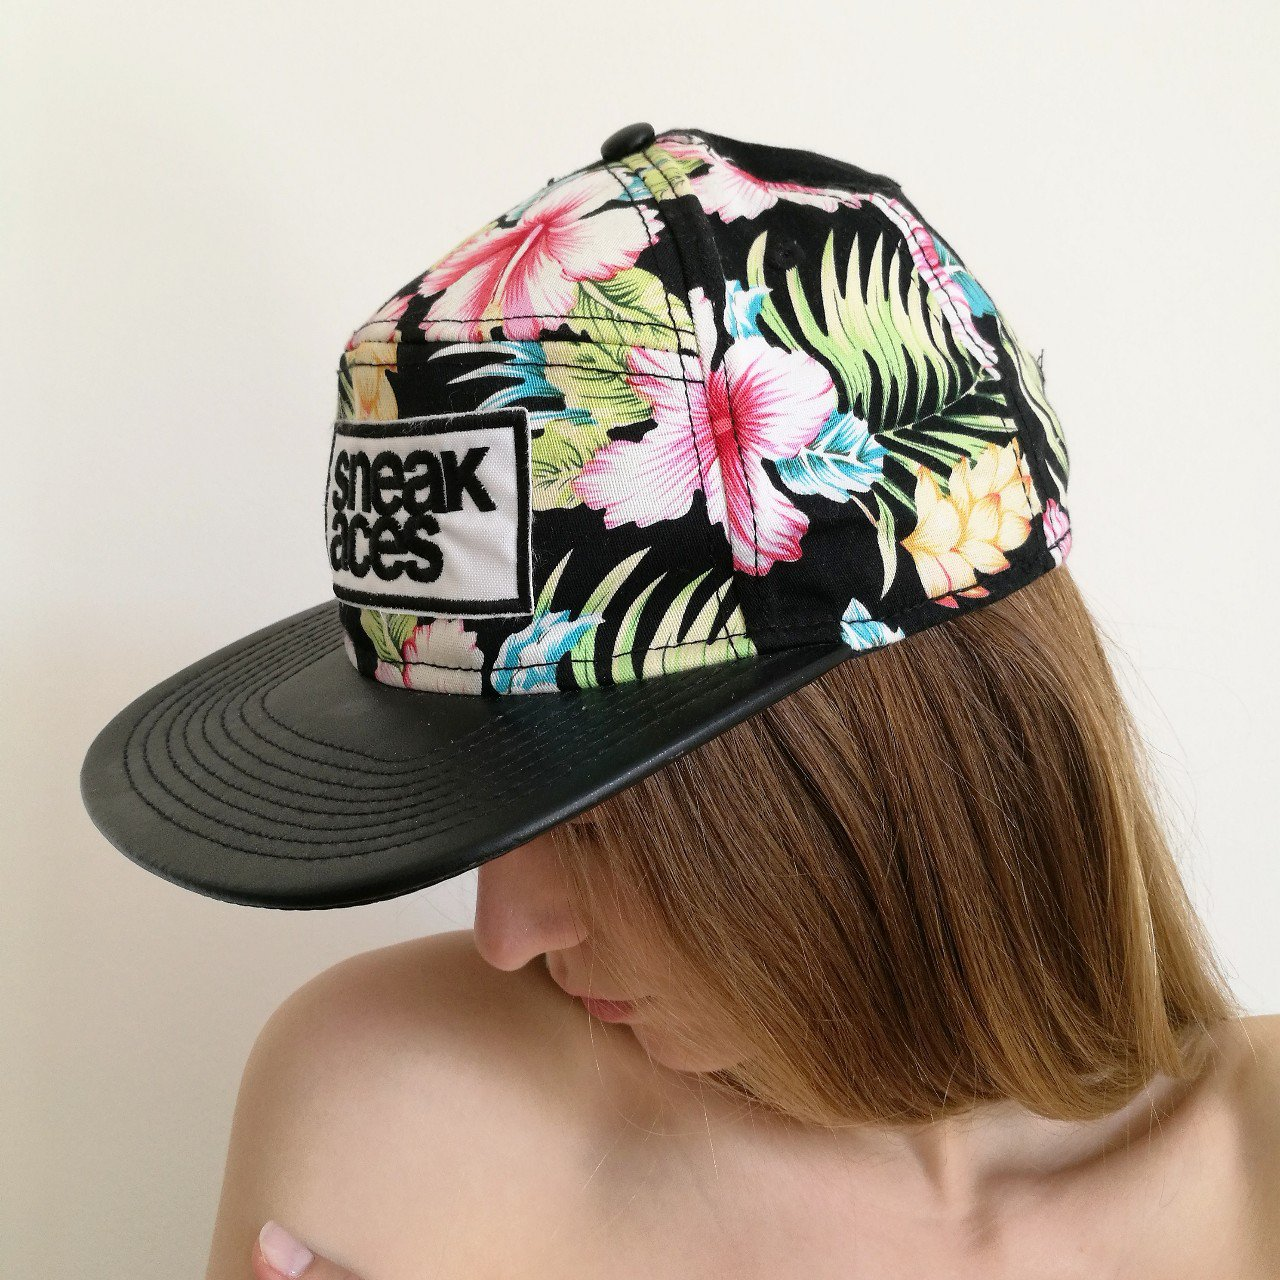 Sneak Aces Tropical Baseball Hat One Size 🔸 Condition for - Depop 0e0acc5137f